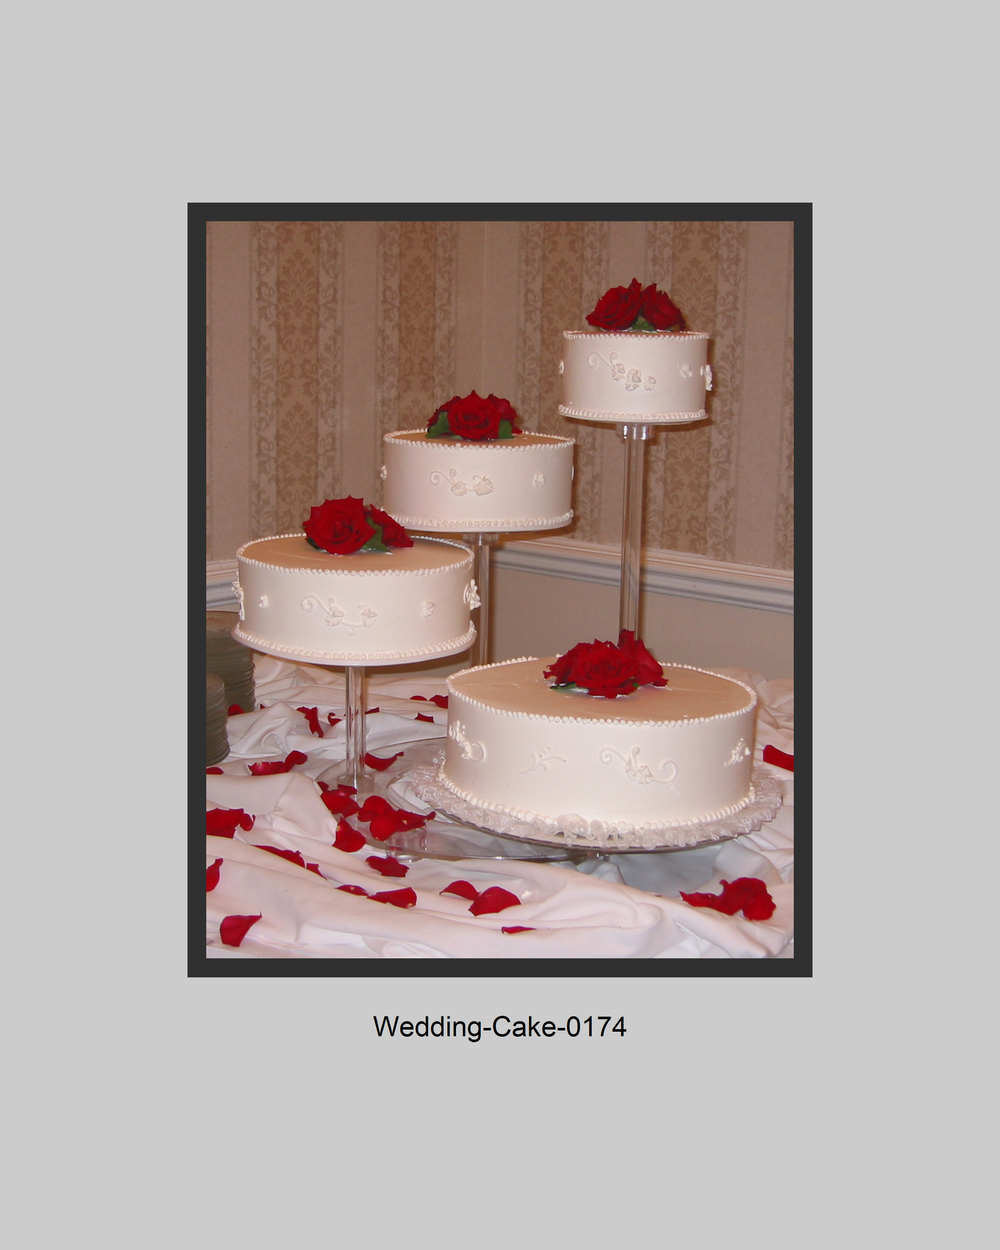 Wedding-Cake-Prints-0174.jpg